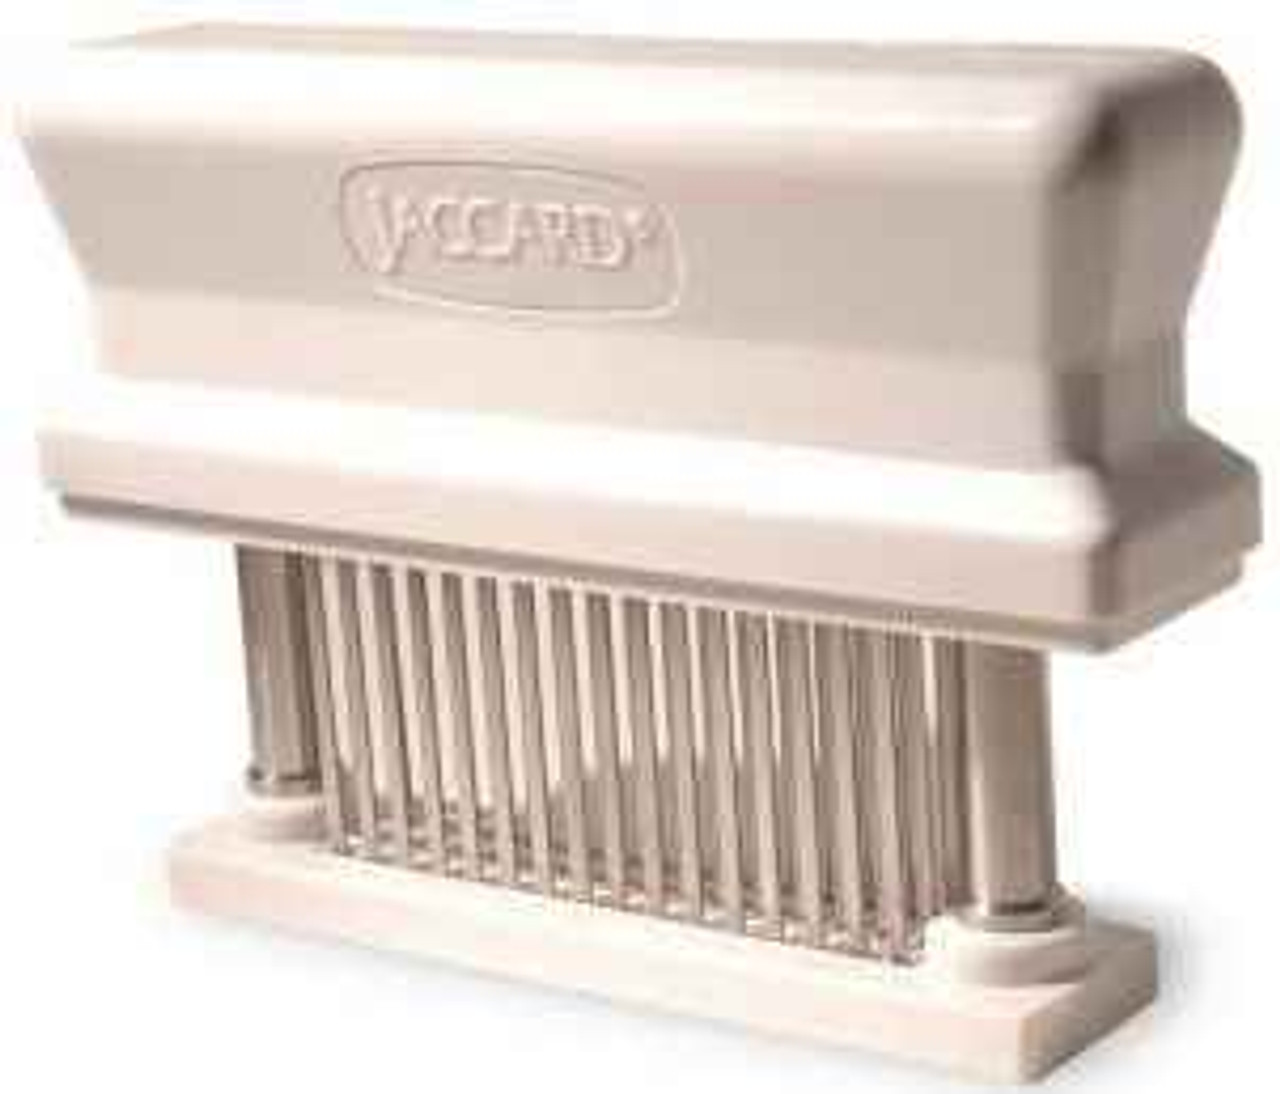 Jaccard 200348 Super Tendermatic Meat Tenderizer, 48 Blades